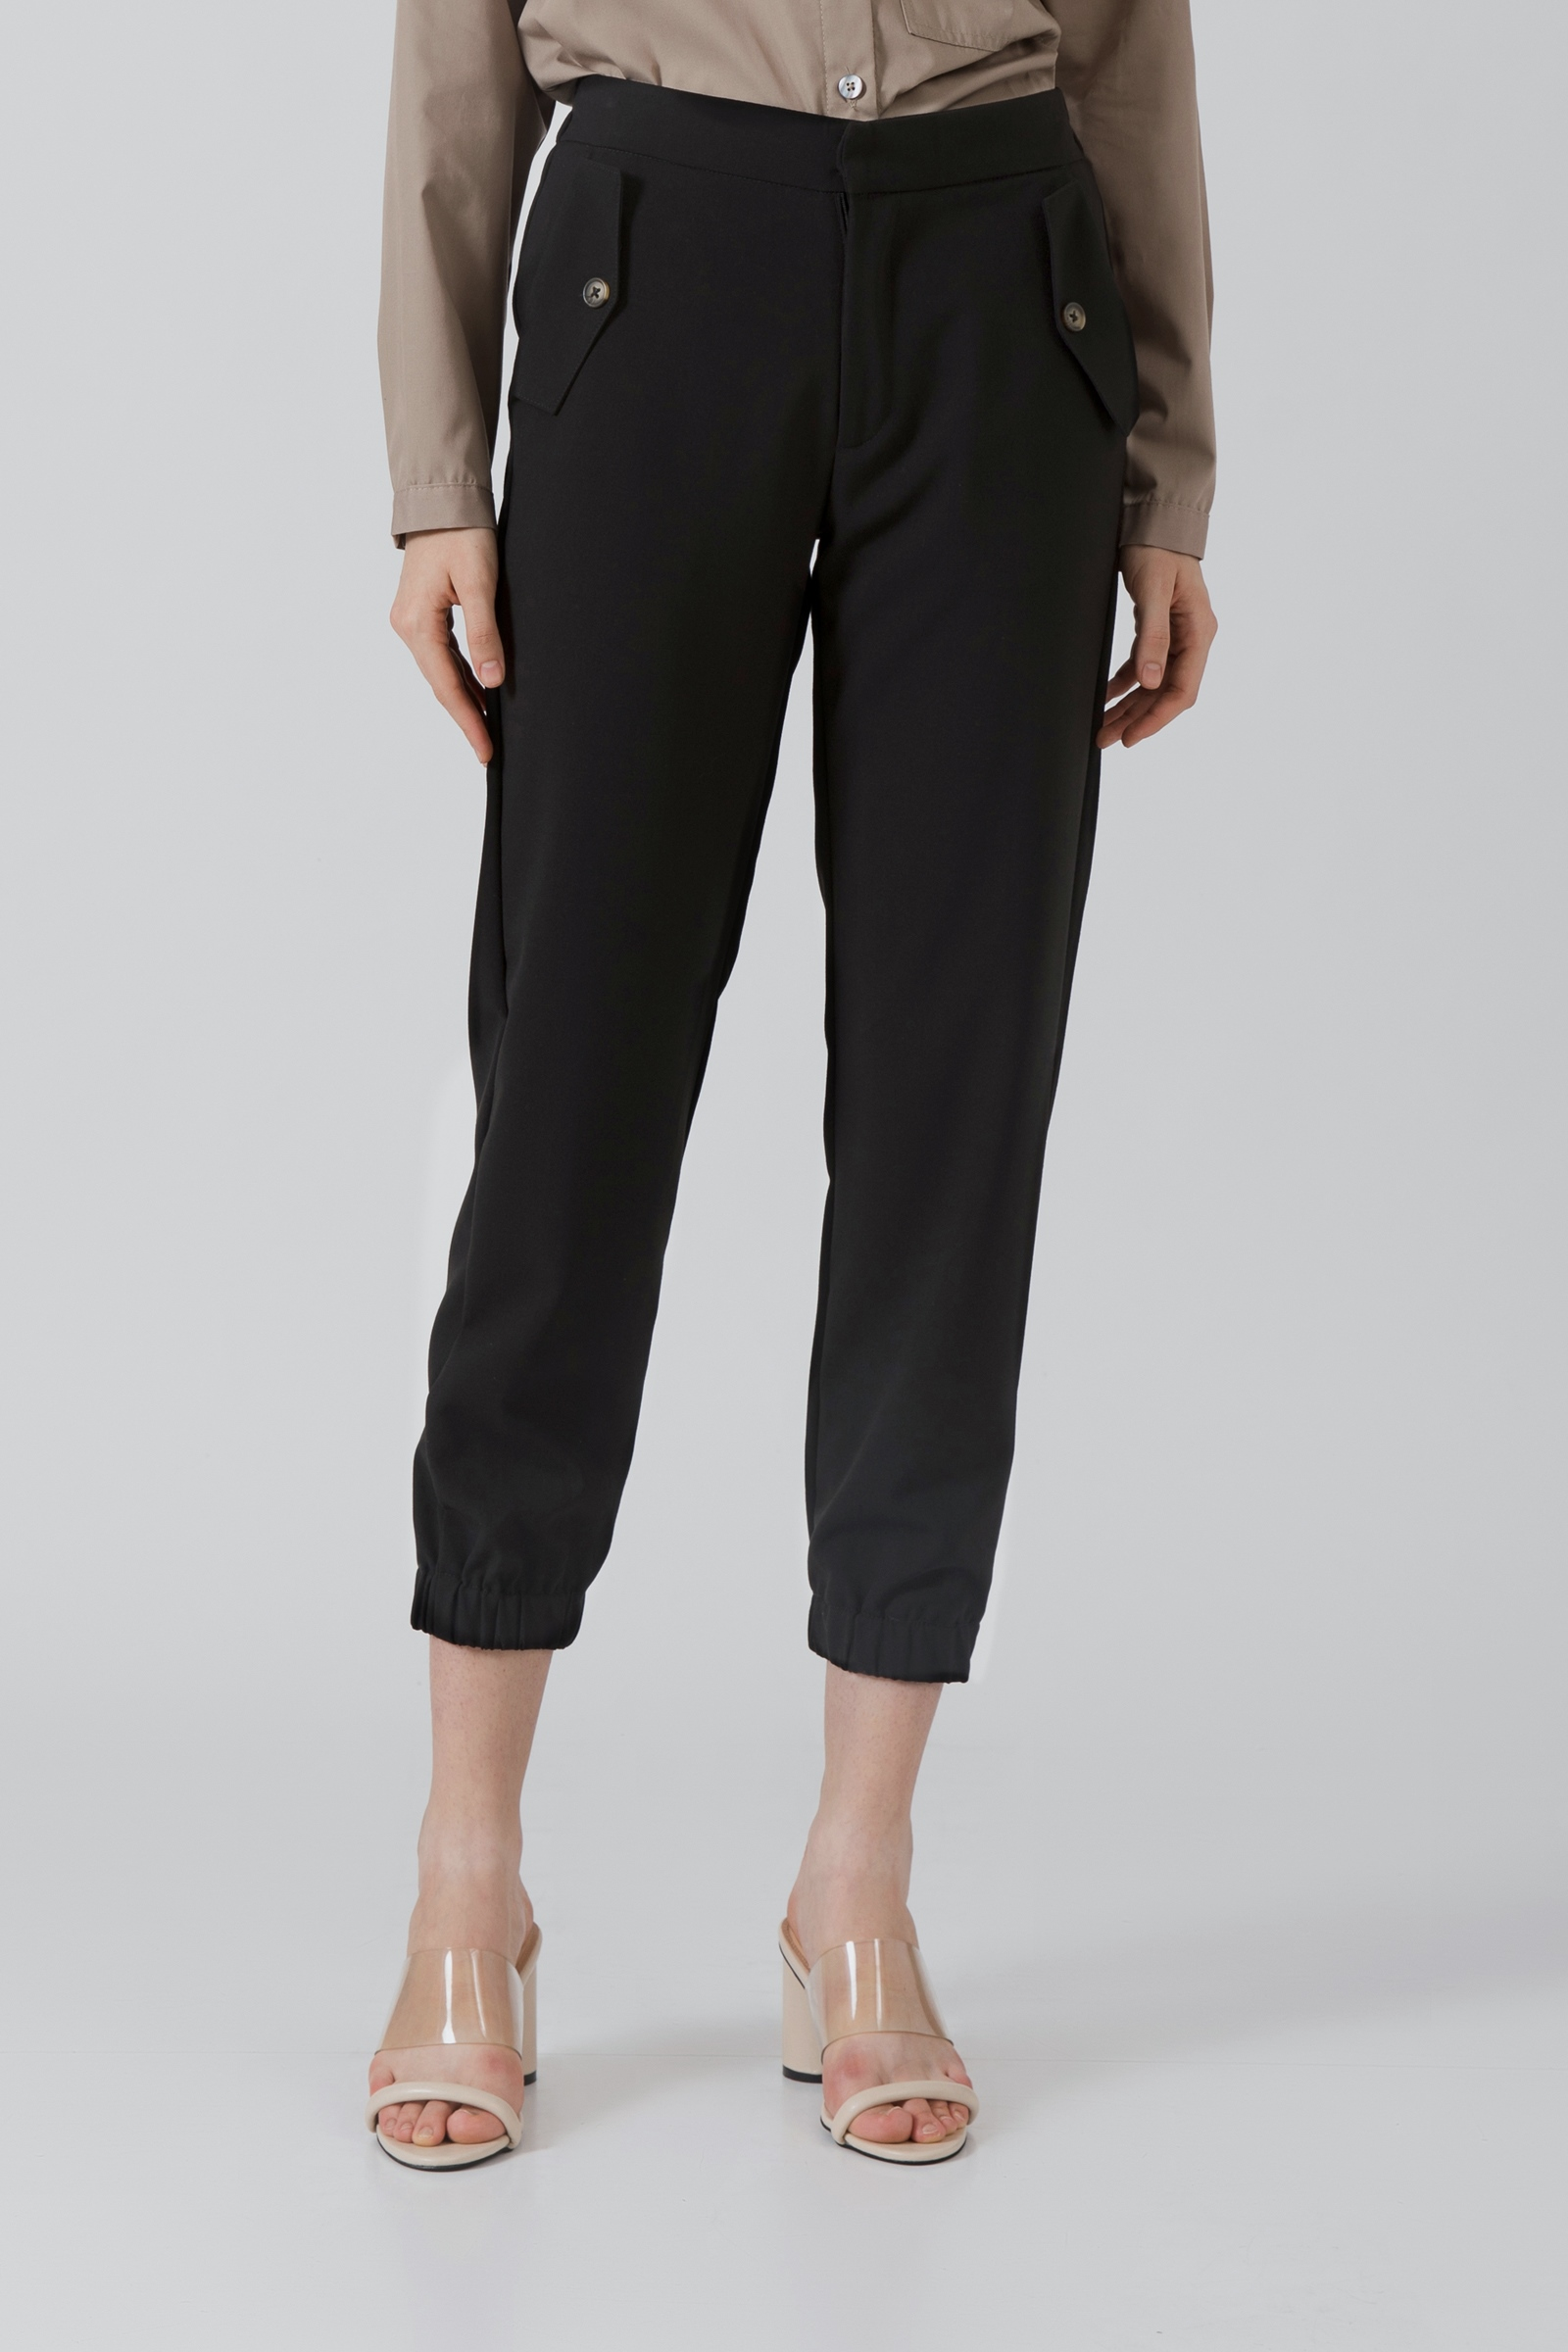 Picture of Shenzi Joger Pants  Black